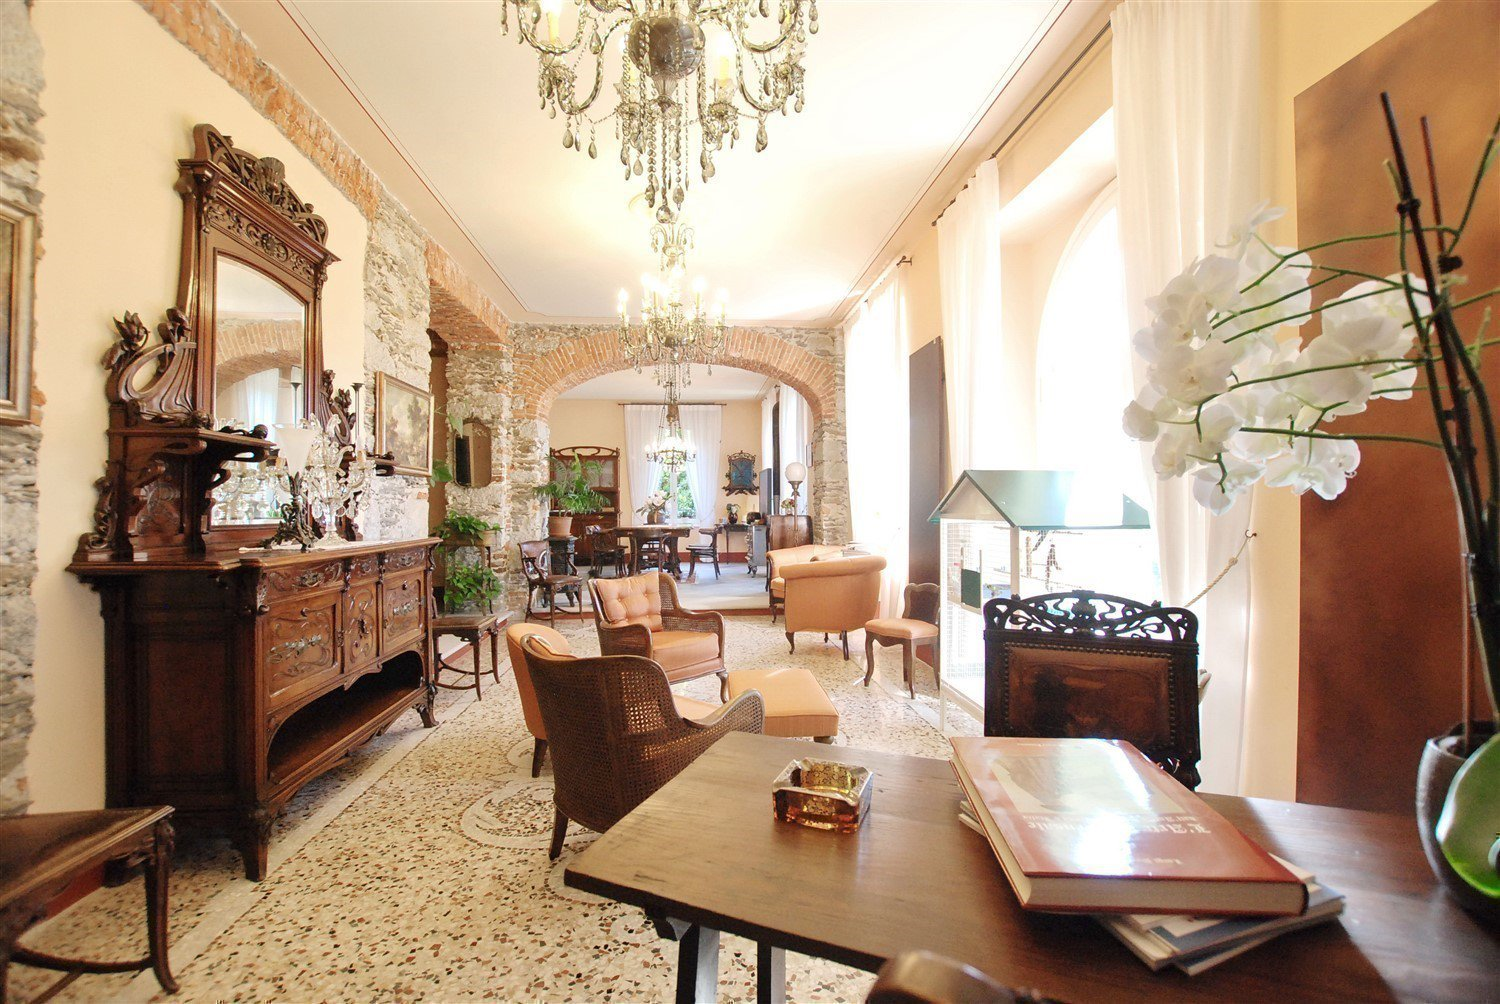 Historic villa with guesthouse and land for sale in Verbania - living area